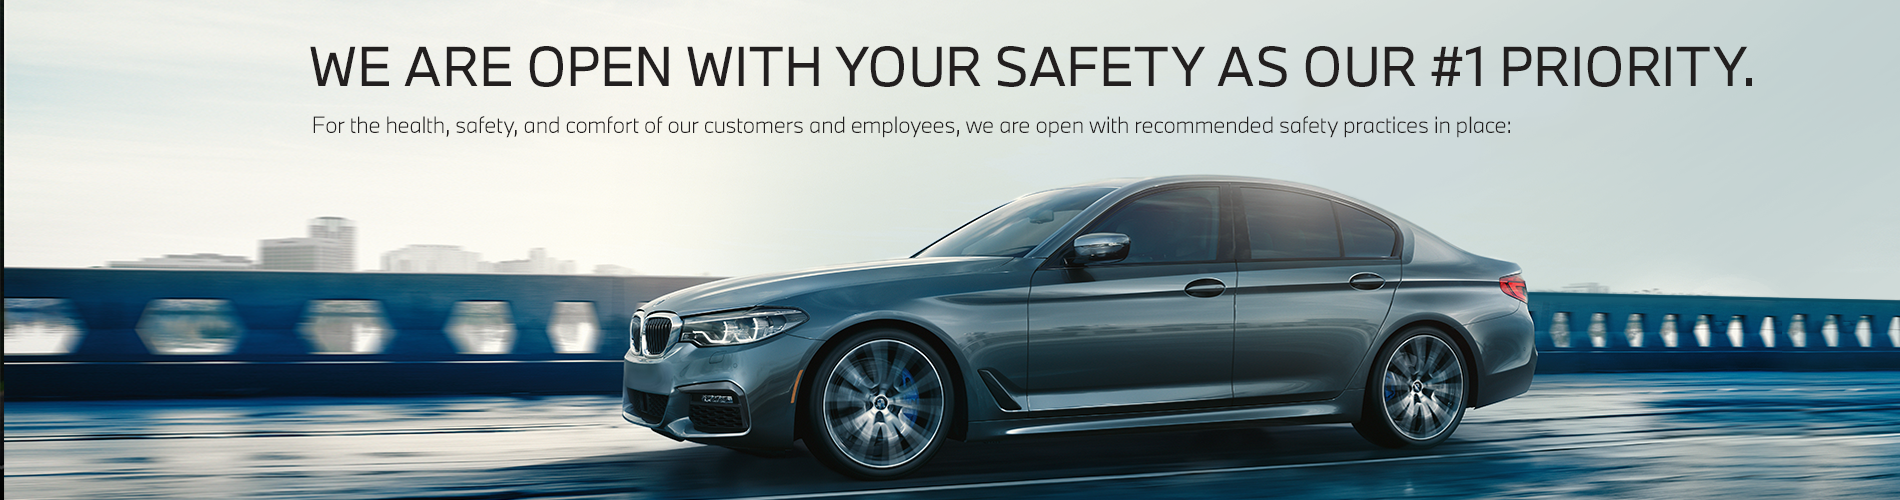 What to Expect at BMW of Minnetonka